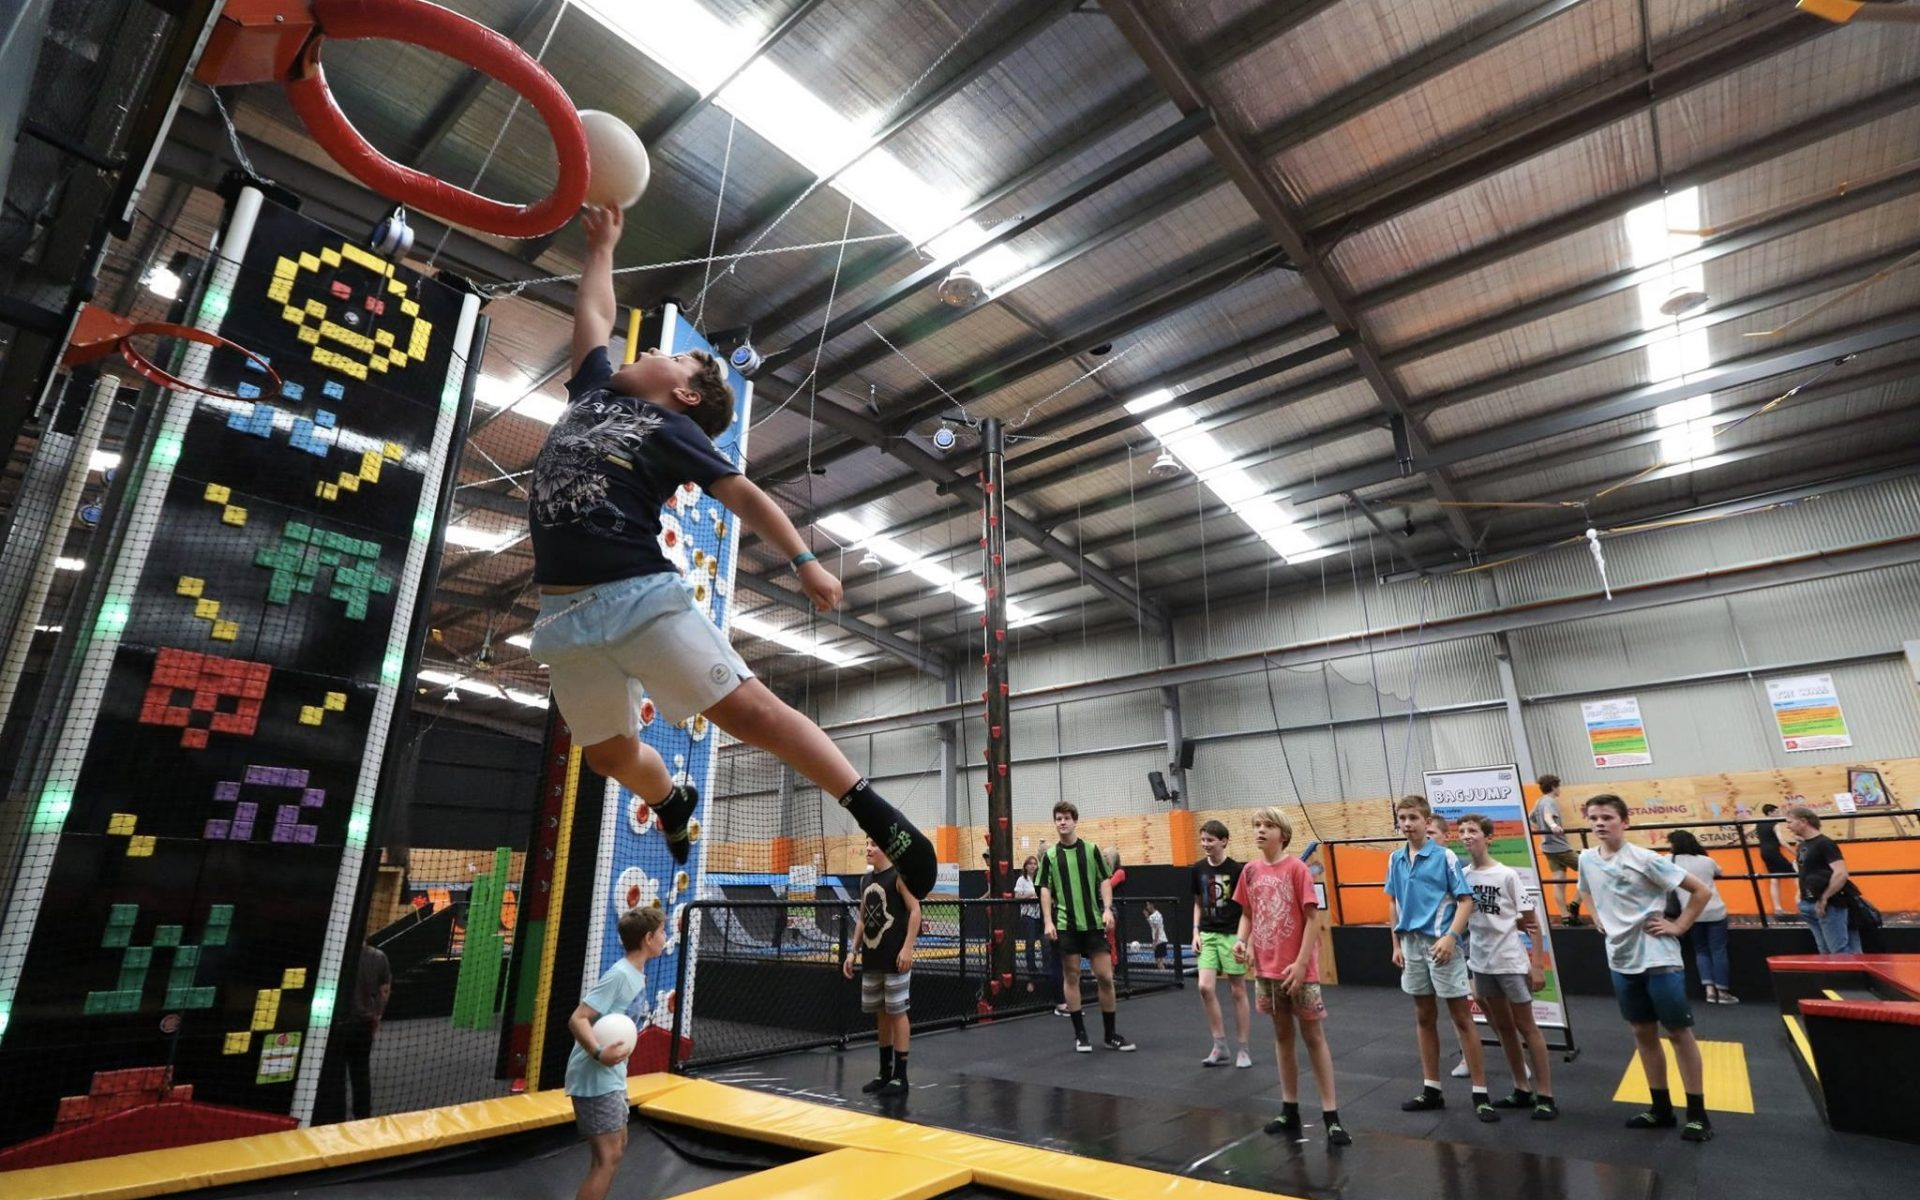 Image of children jumping on indoor trampolines and playing sports